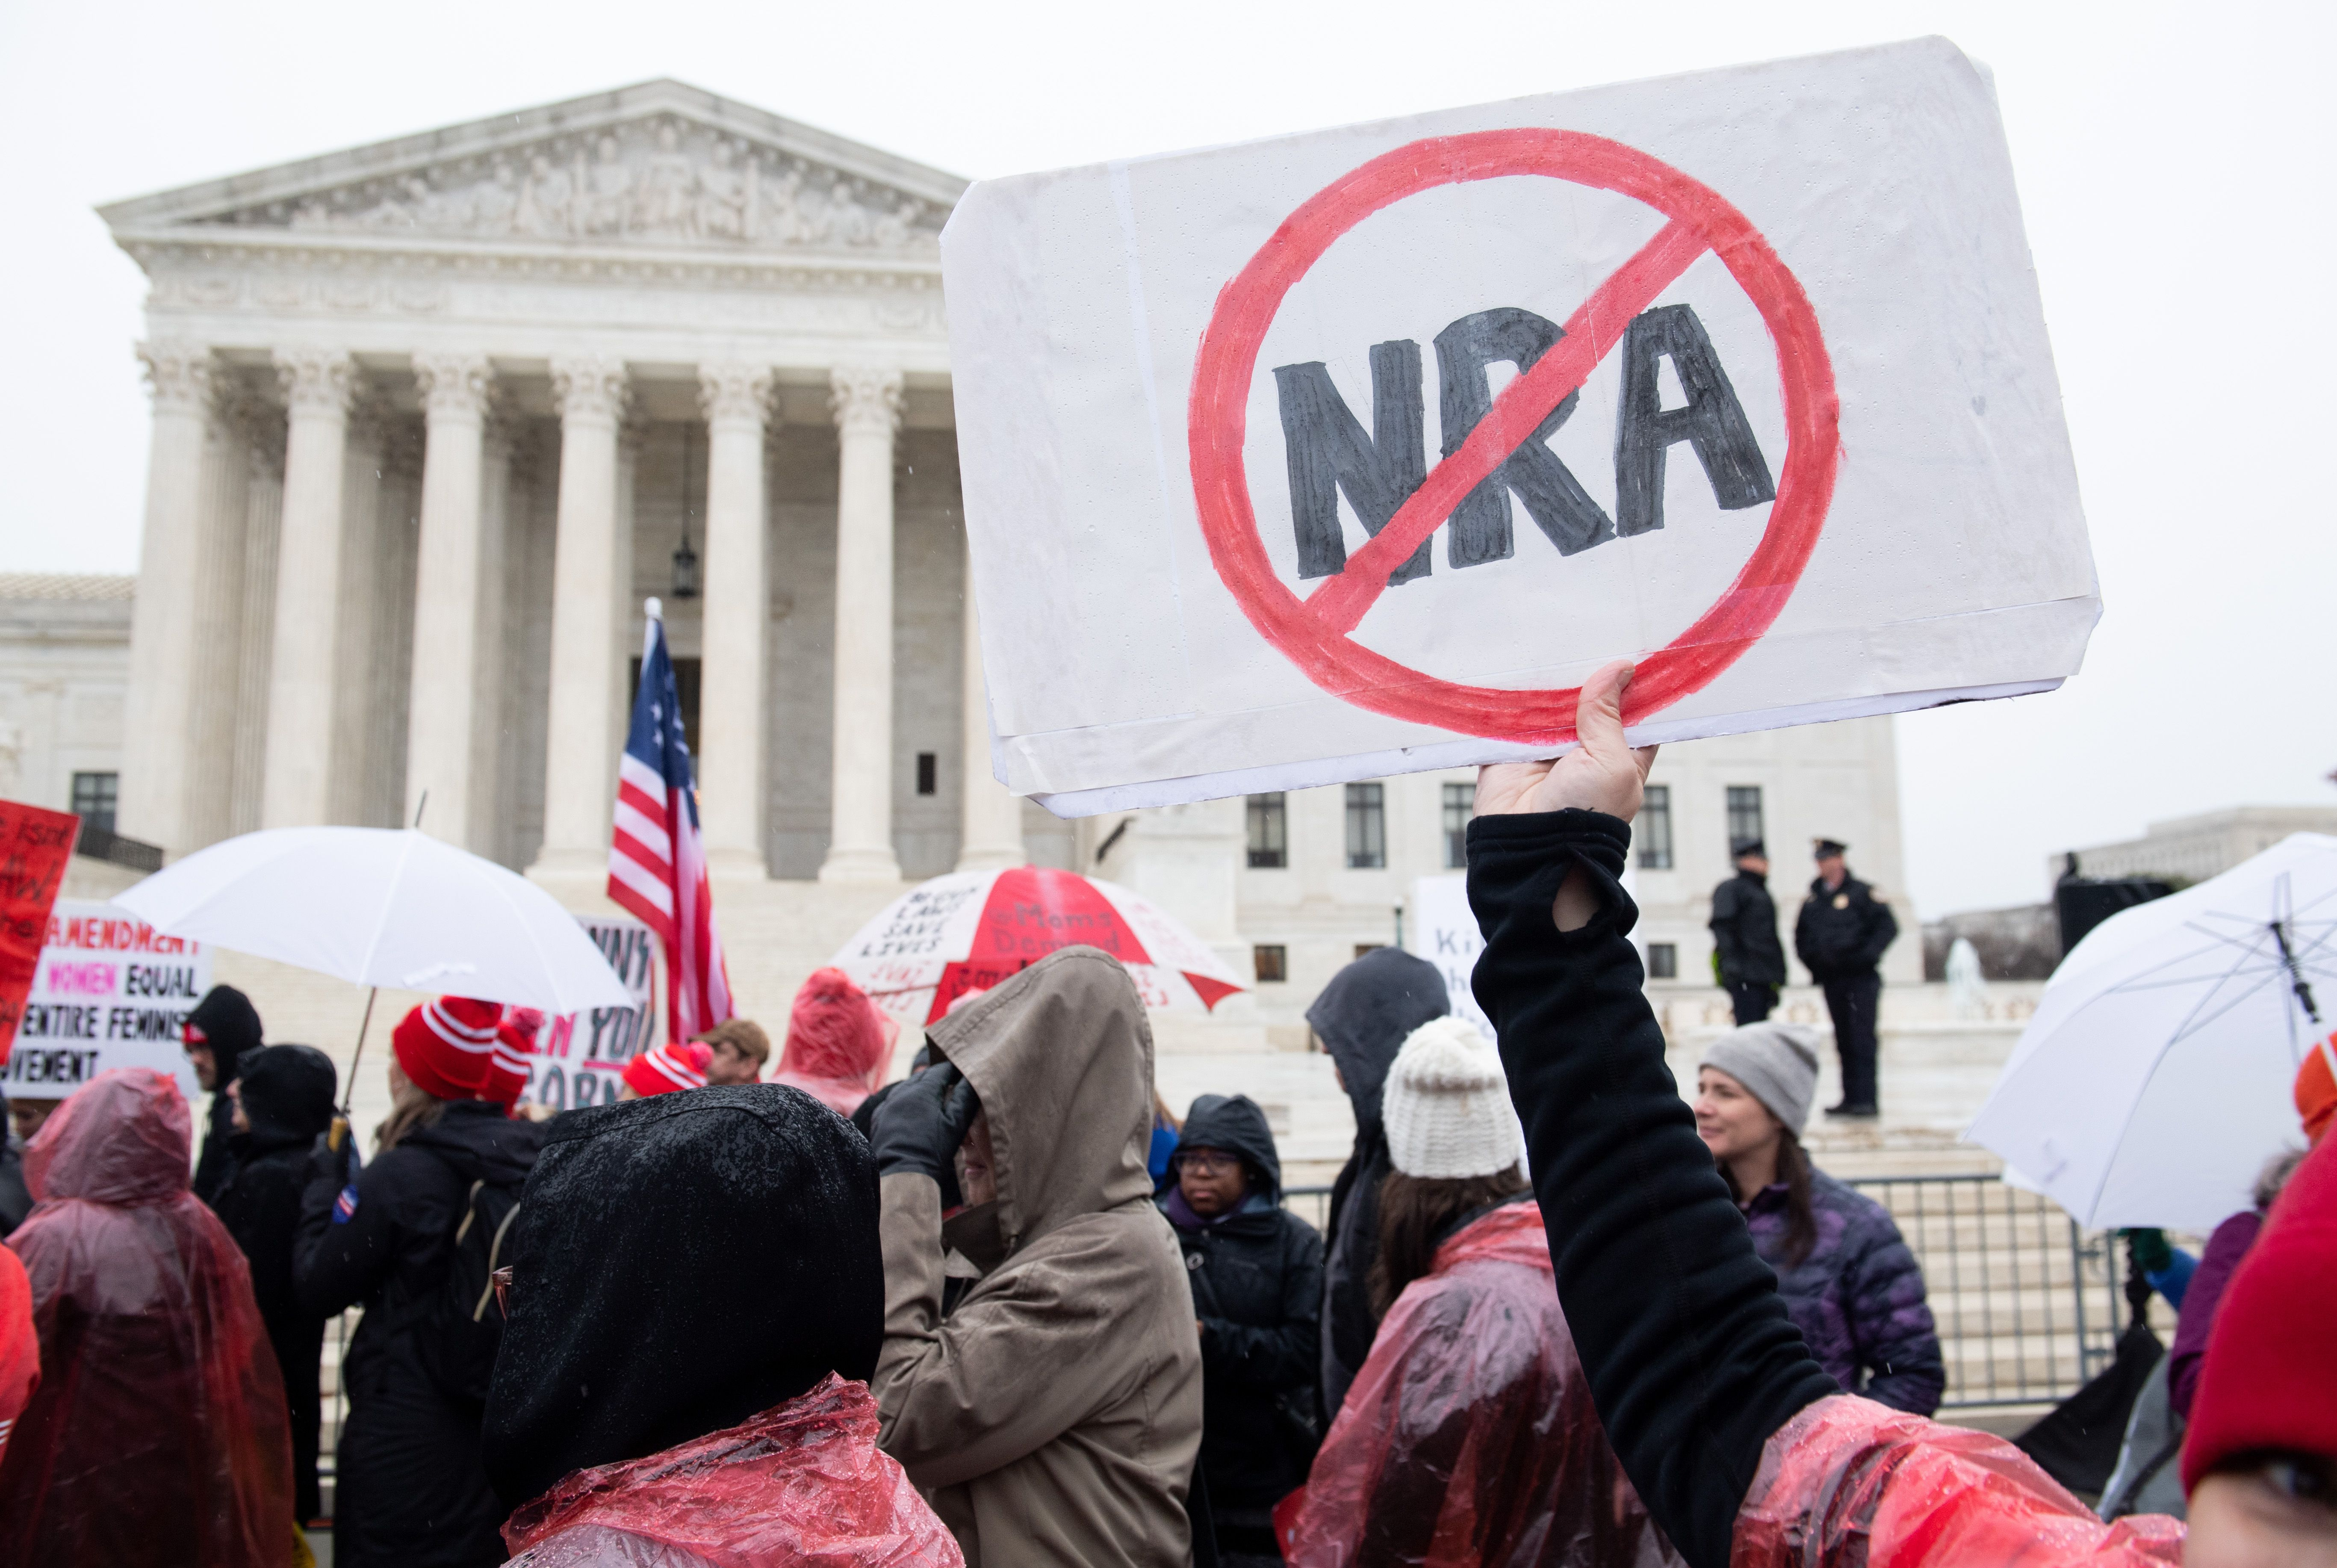 Protesters outside the Supreme Court building holds up a sign that has the red-circled letters NRA on it with a line through them.